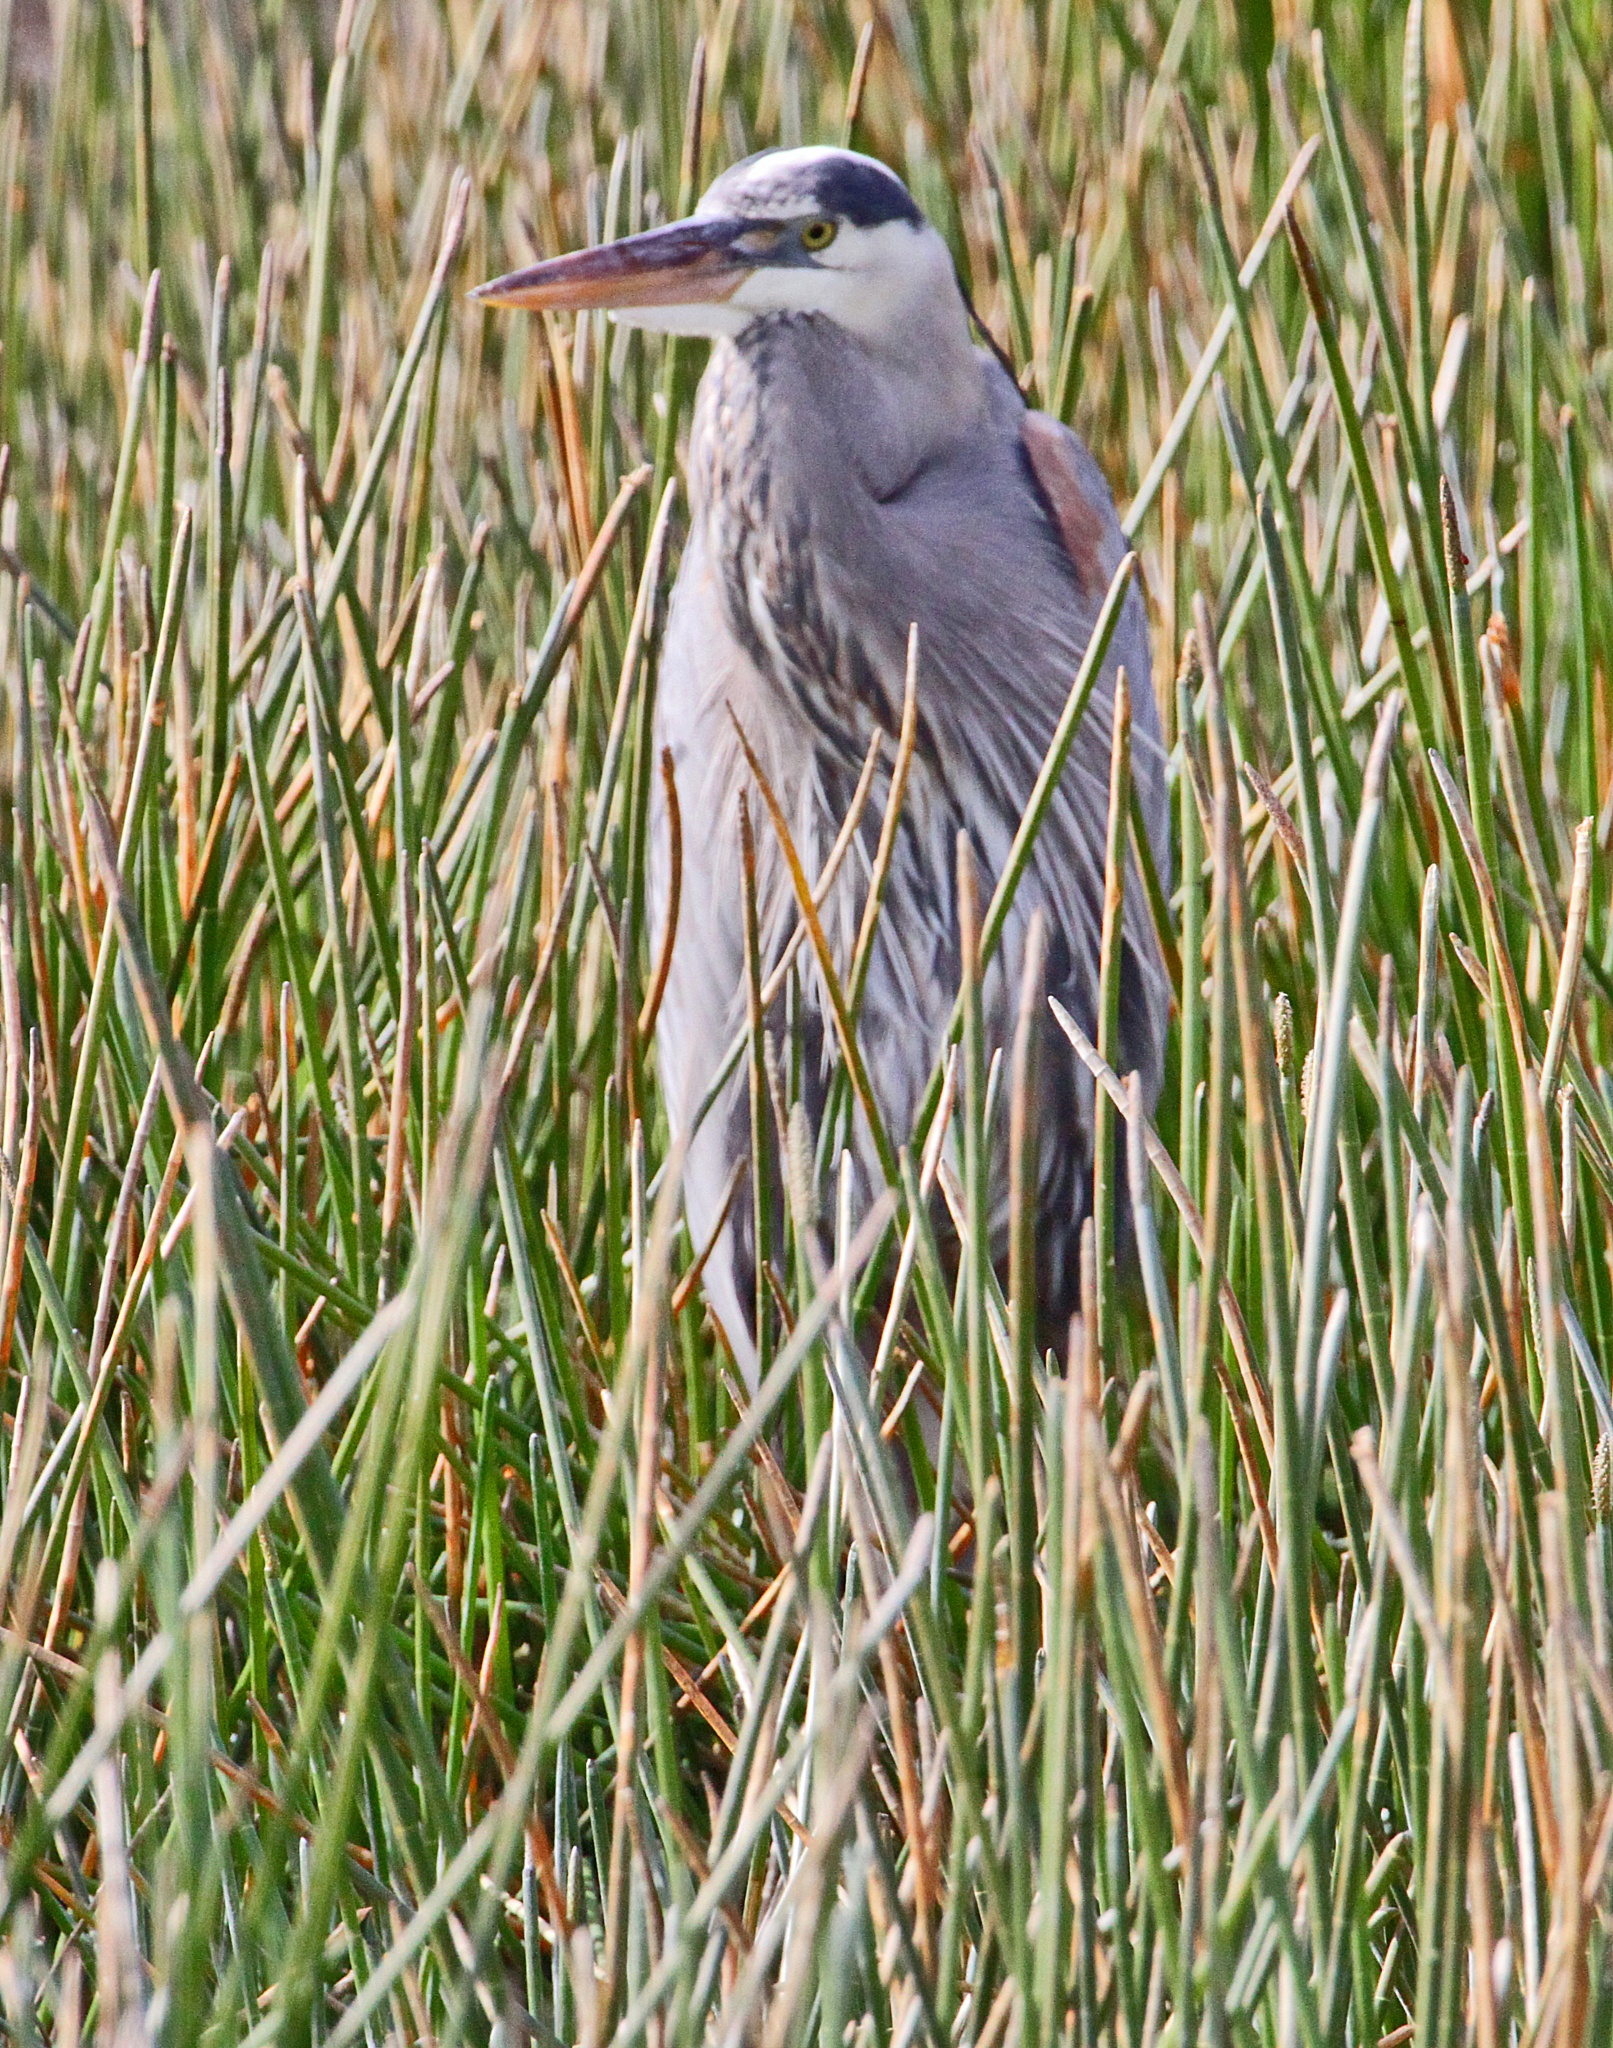 Great Blue Heron in the Reeds by JepThor